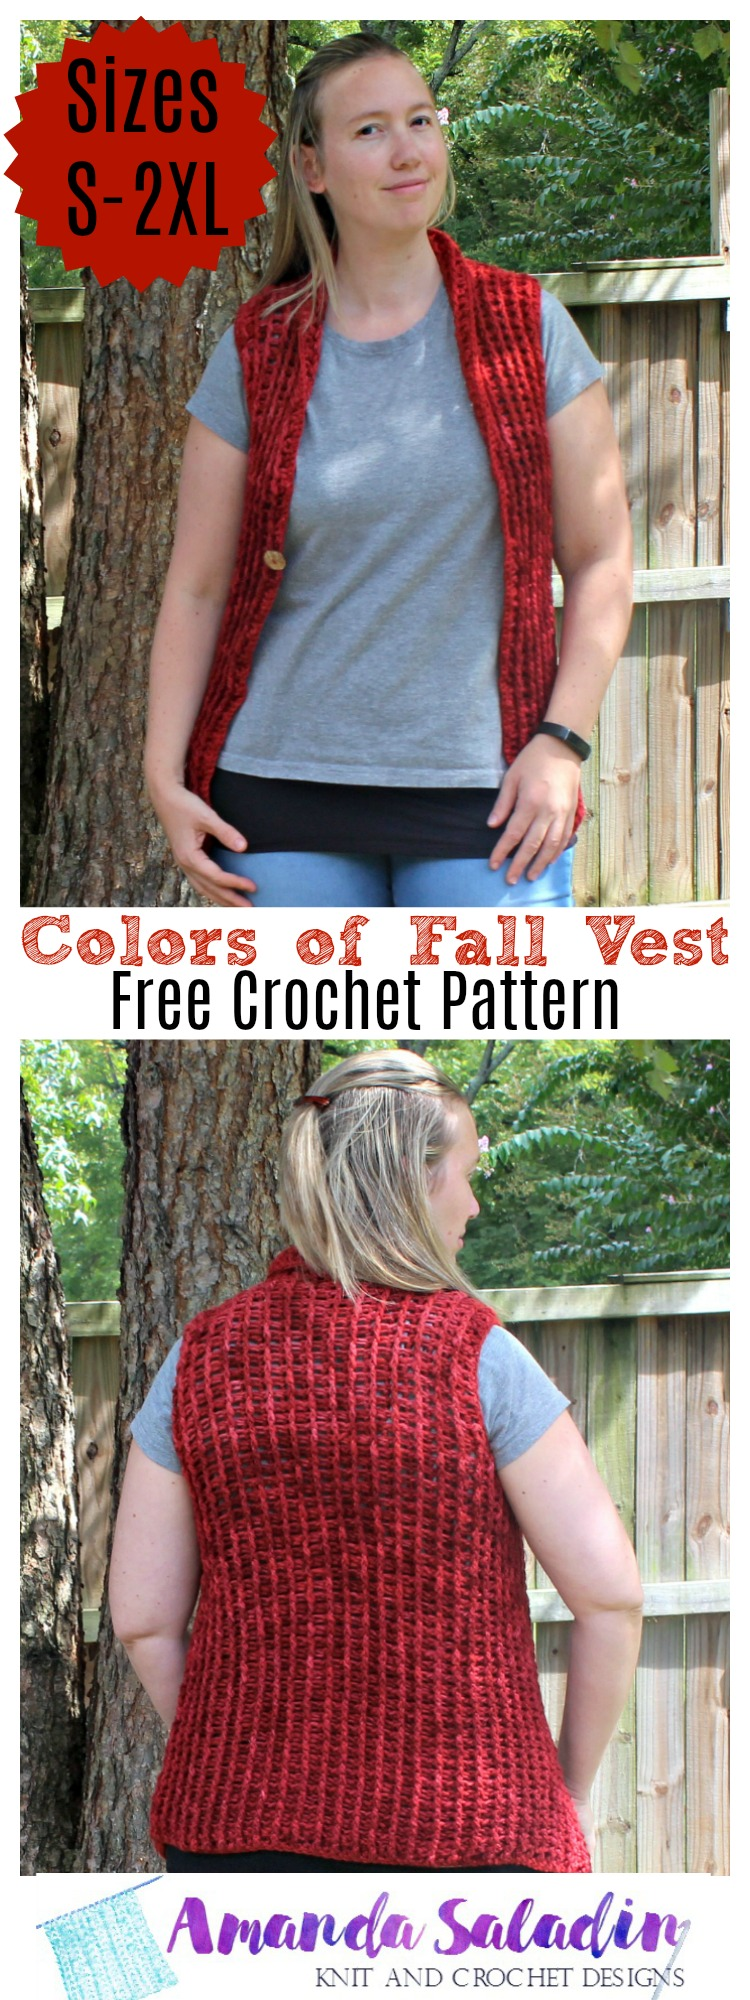 free crochet pattern - colors of fall vest